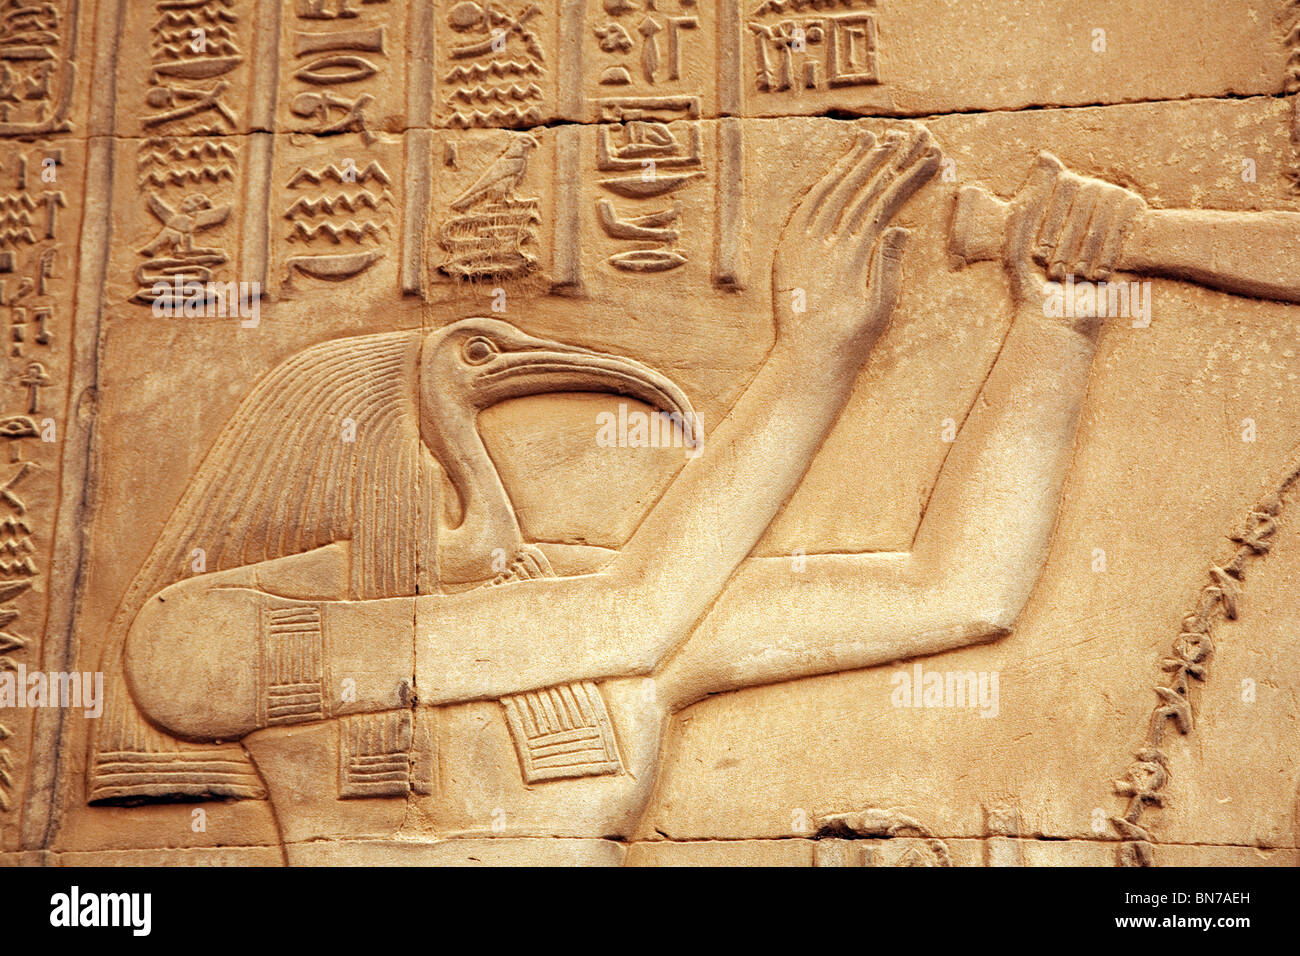 Bas relief alabaster carving of the god thoth